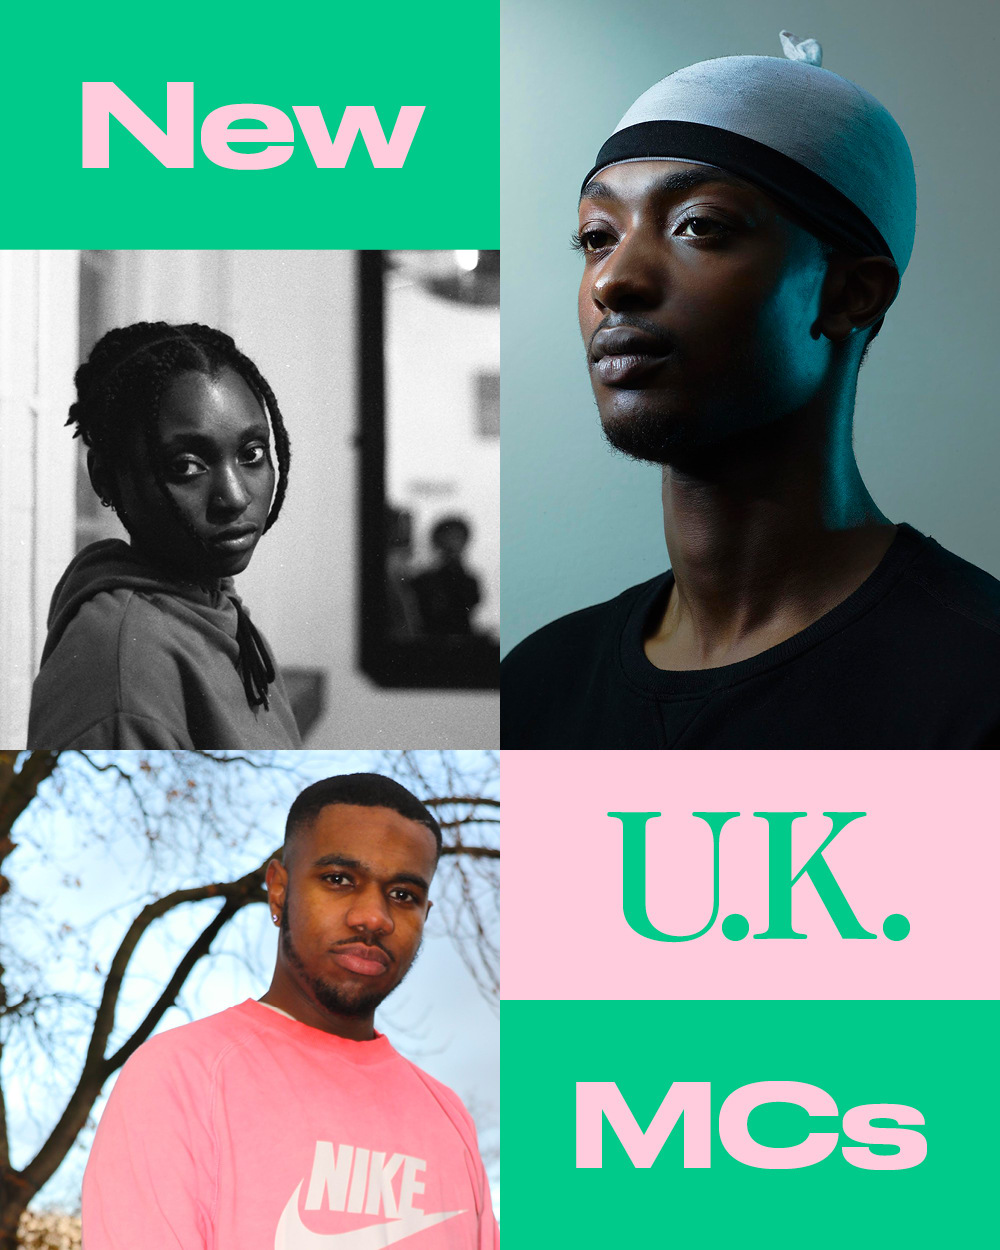 11 U.K. MCs who deserve to blow up in 2018